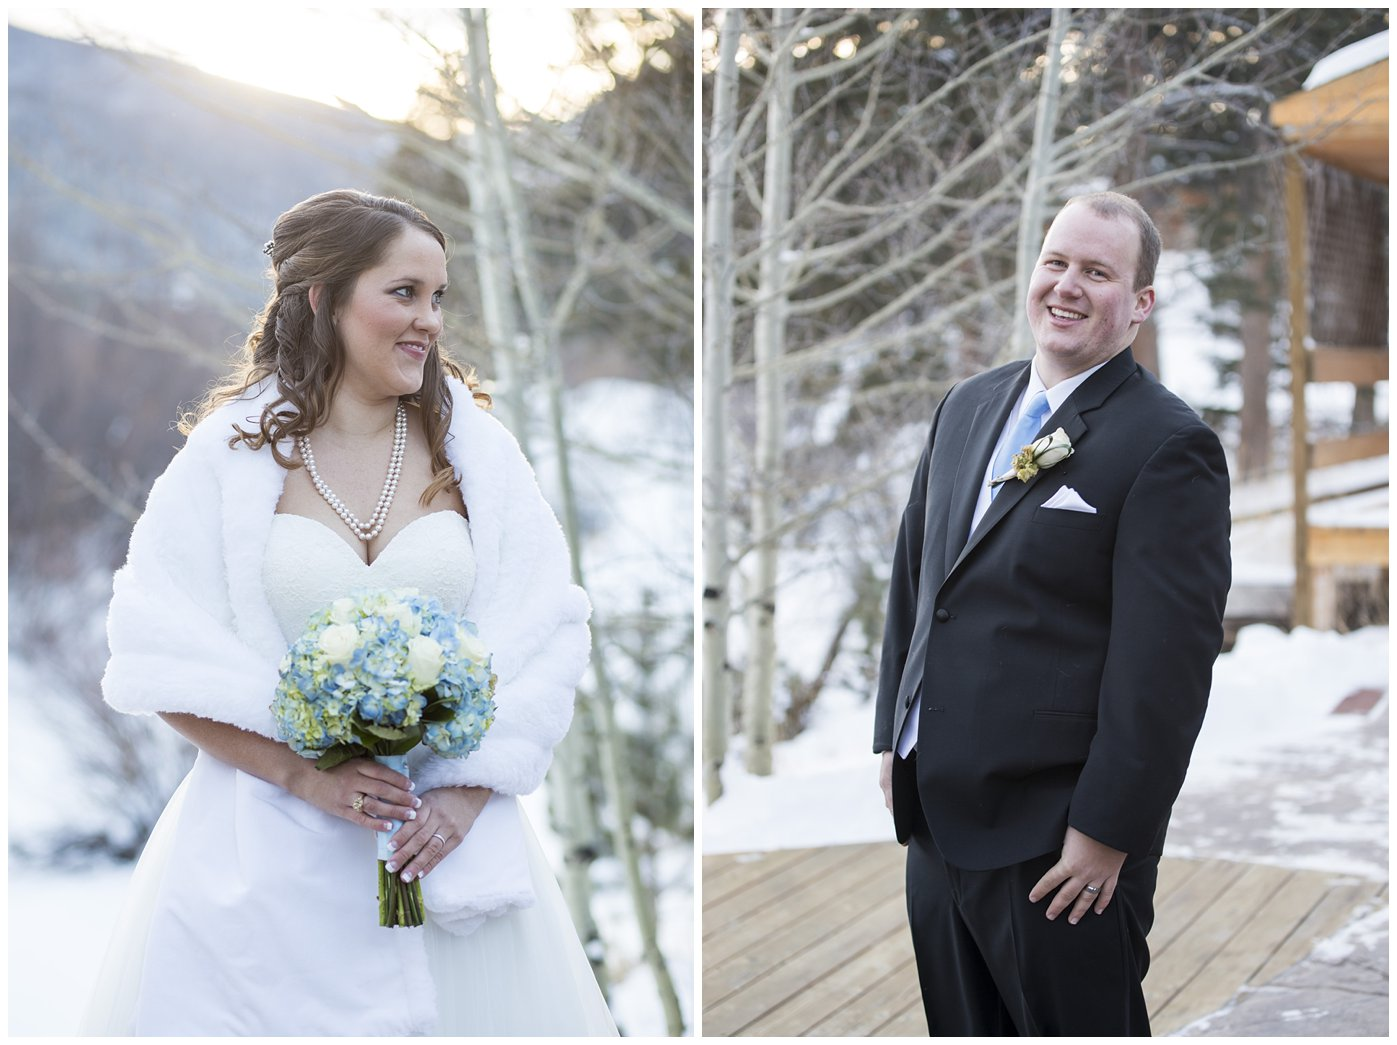 20150101WeddingWalker-Tyler450_web.jpg